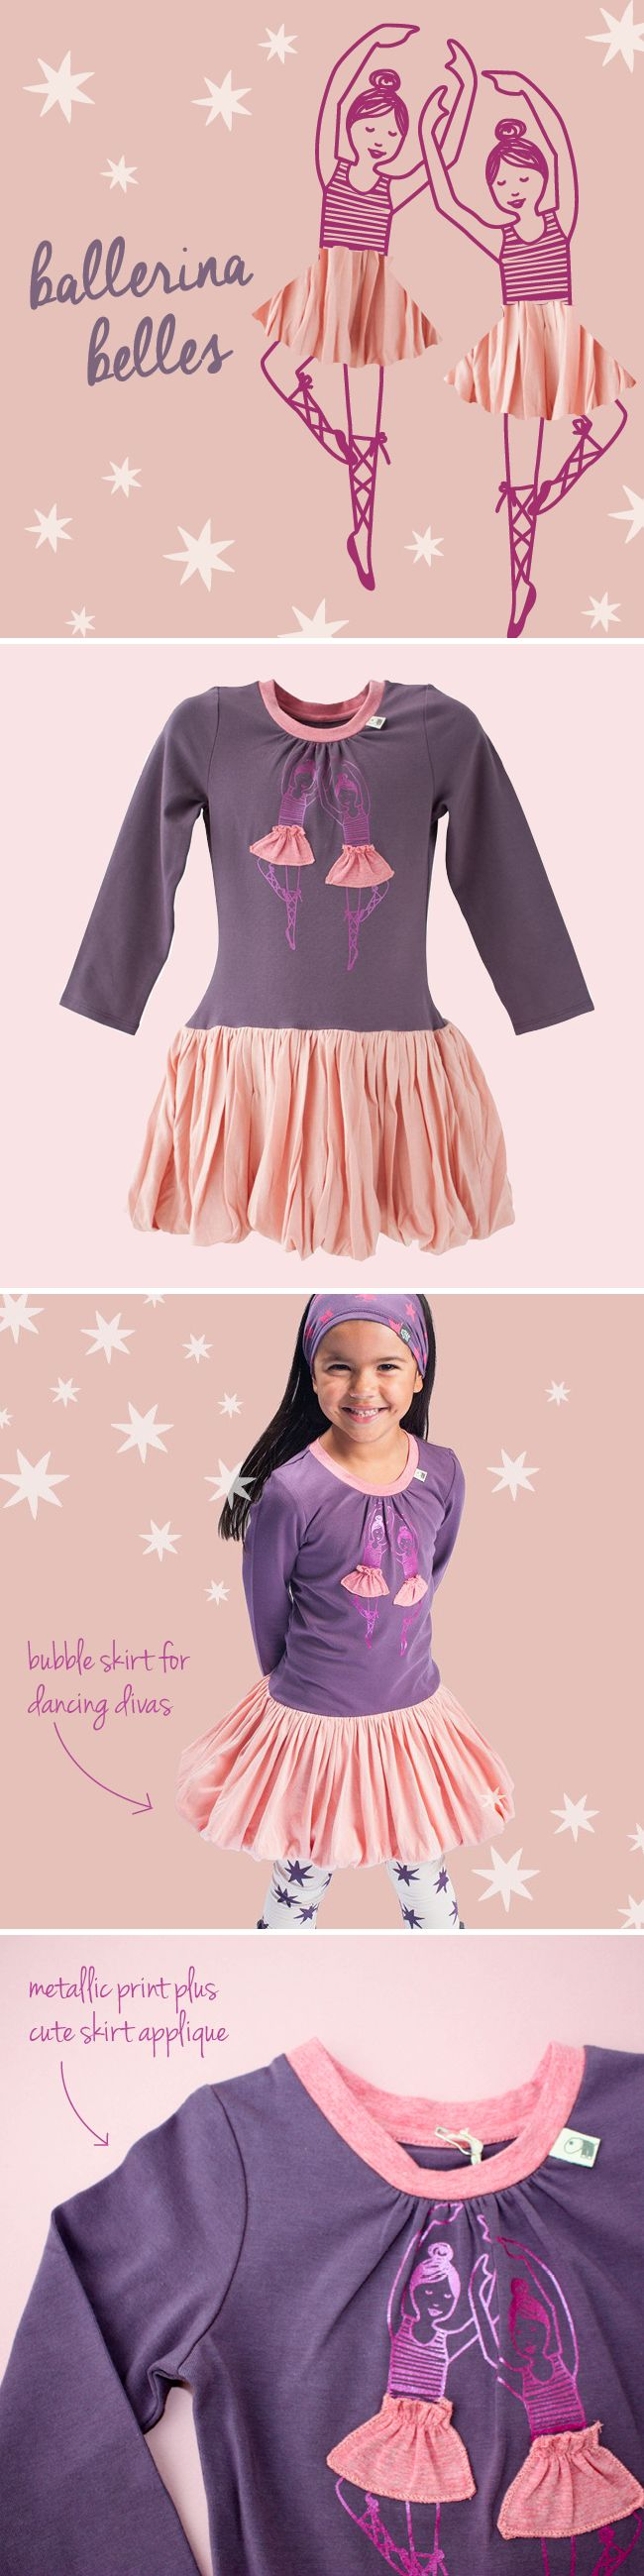 Do you know a little dancing queen? The cute bubble skirt and dancing ballerinas detail is perfect for dancing, jiving and having the time of your life in